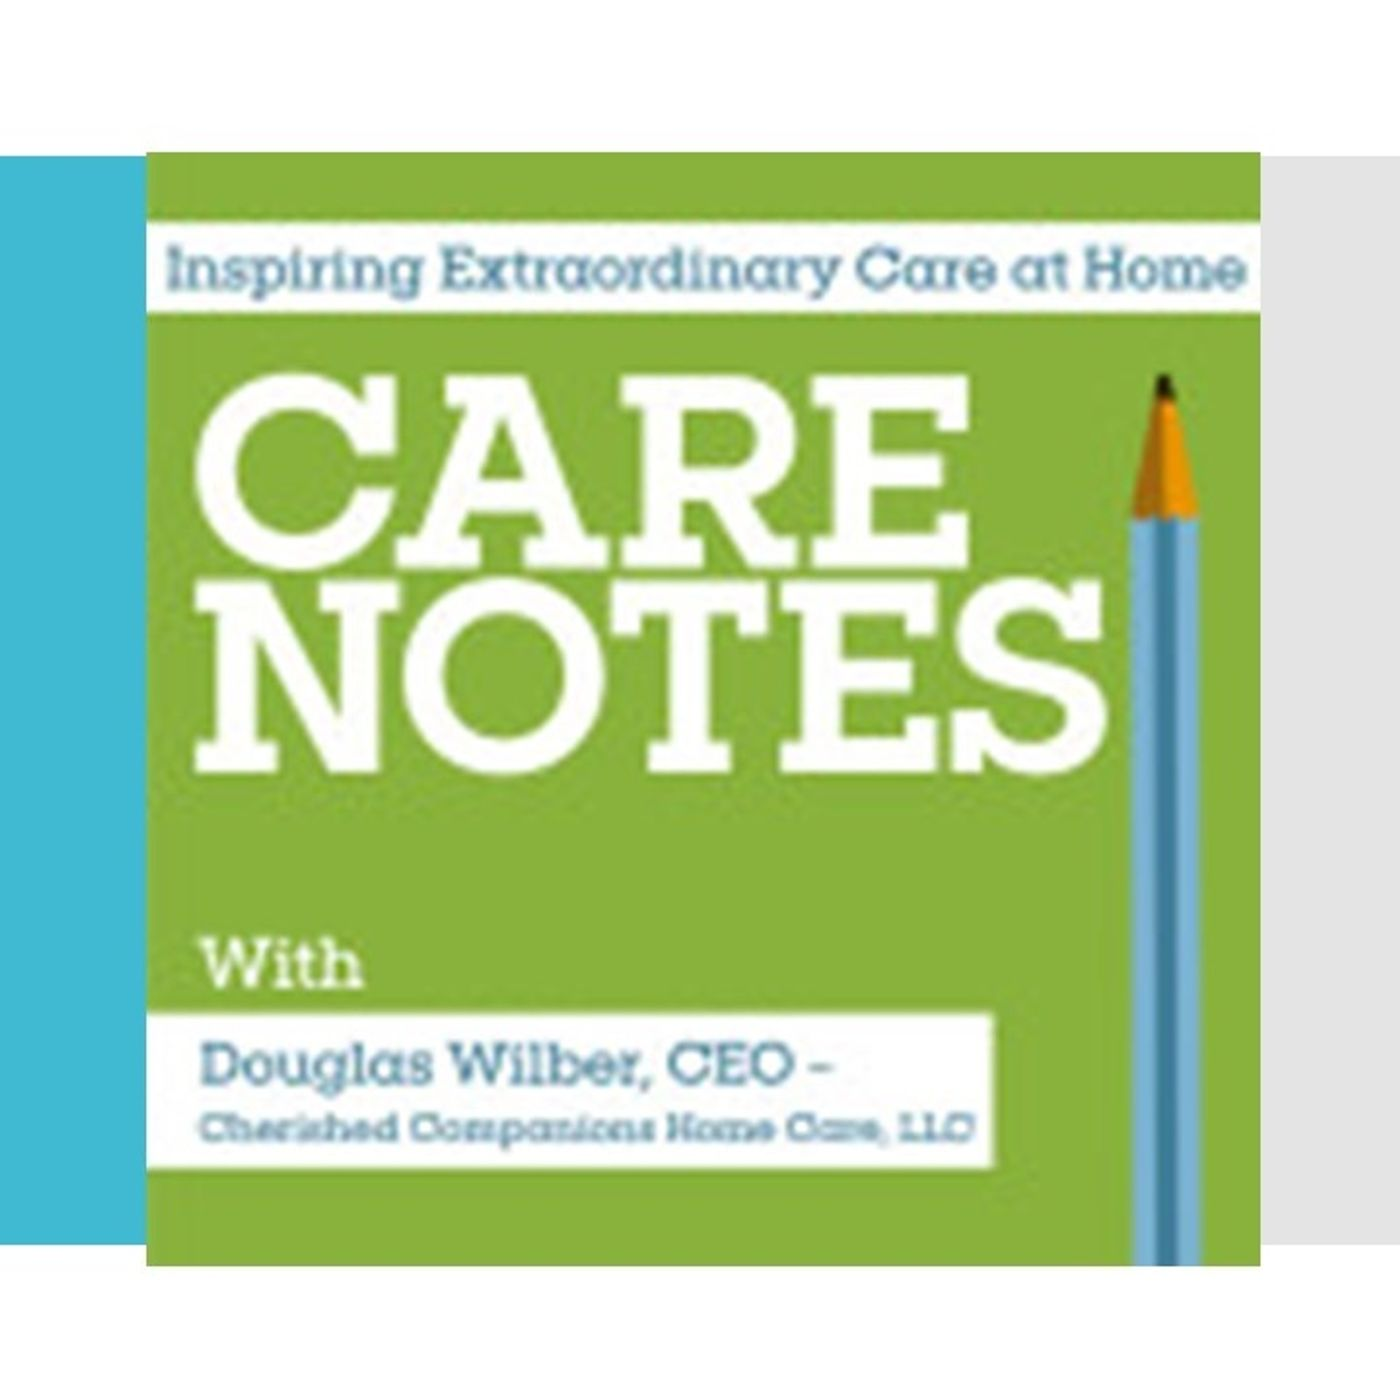 8care-notes-with-randy-richmond-doug-wilber-10_23_18